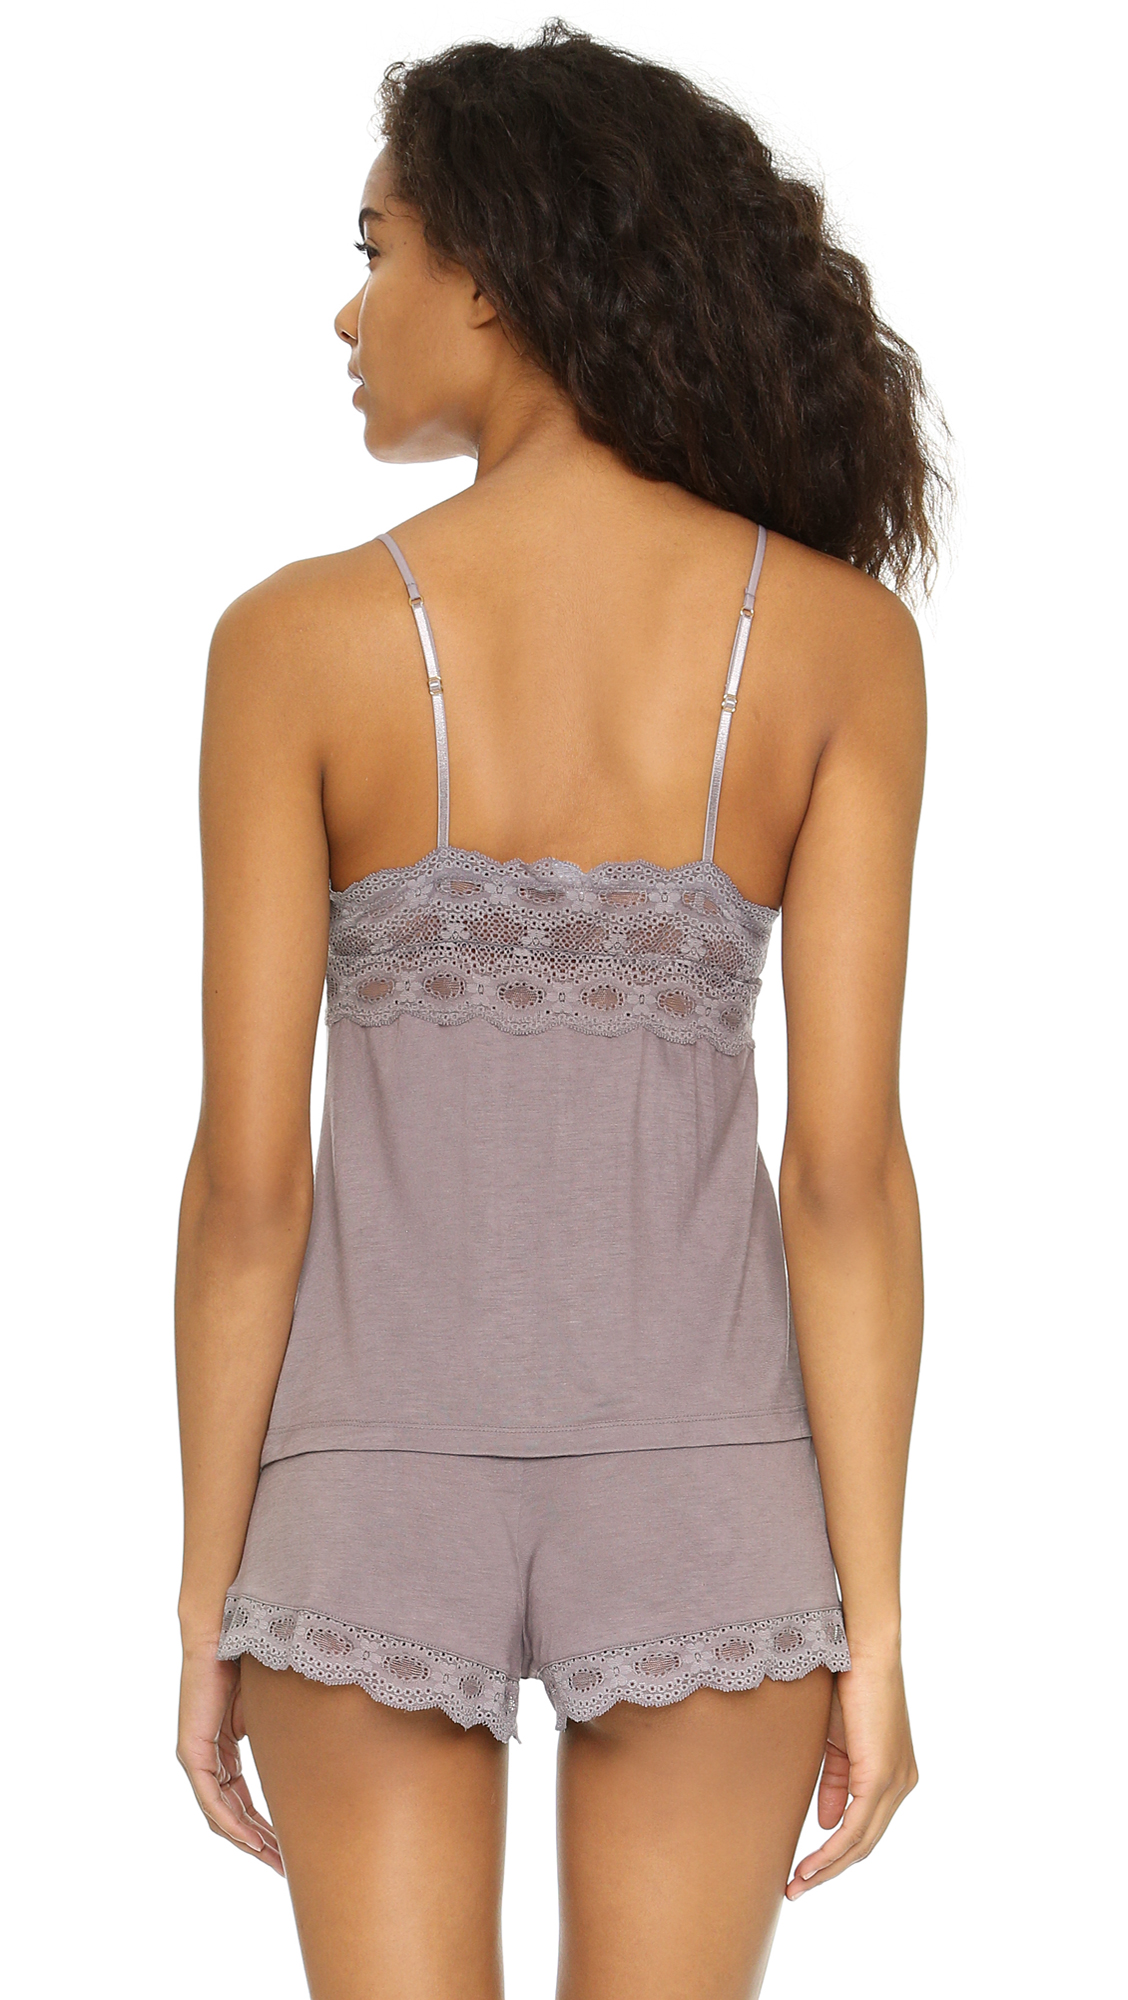 35120a43b1a Eberjey India Lace Camisole